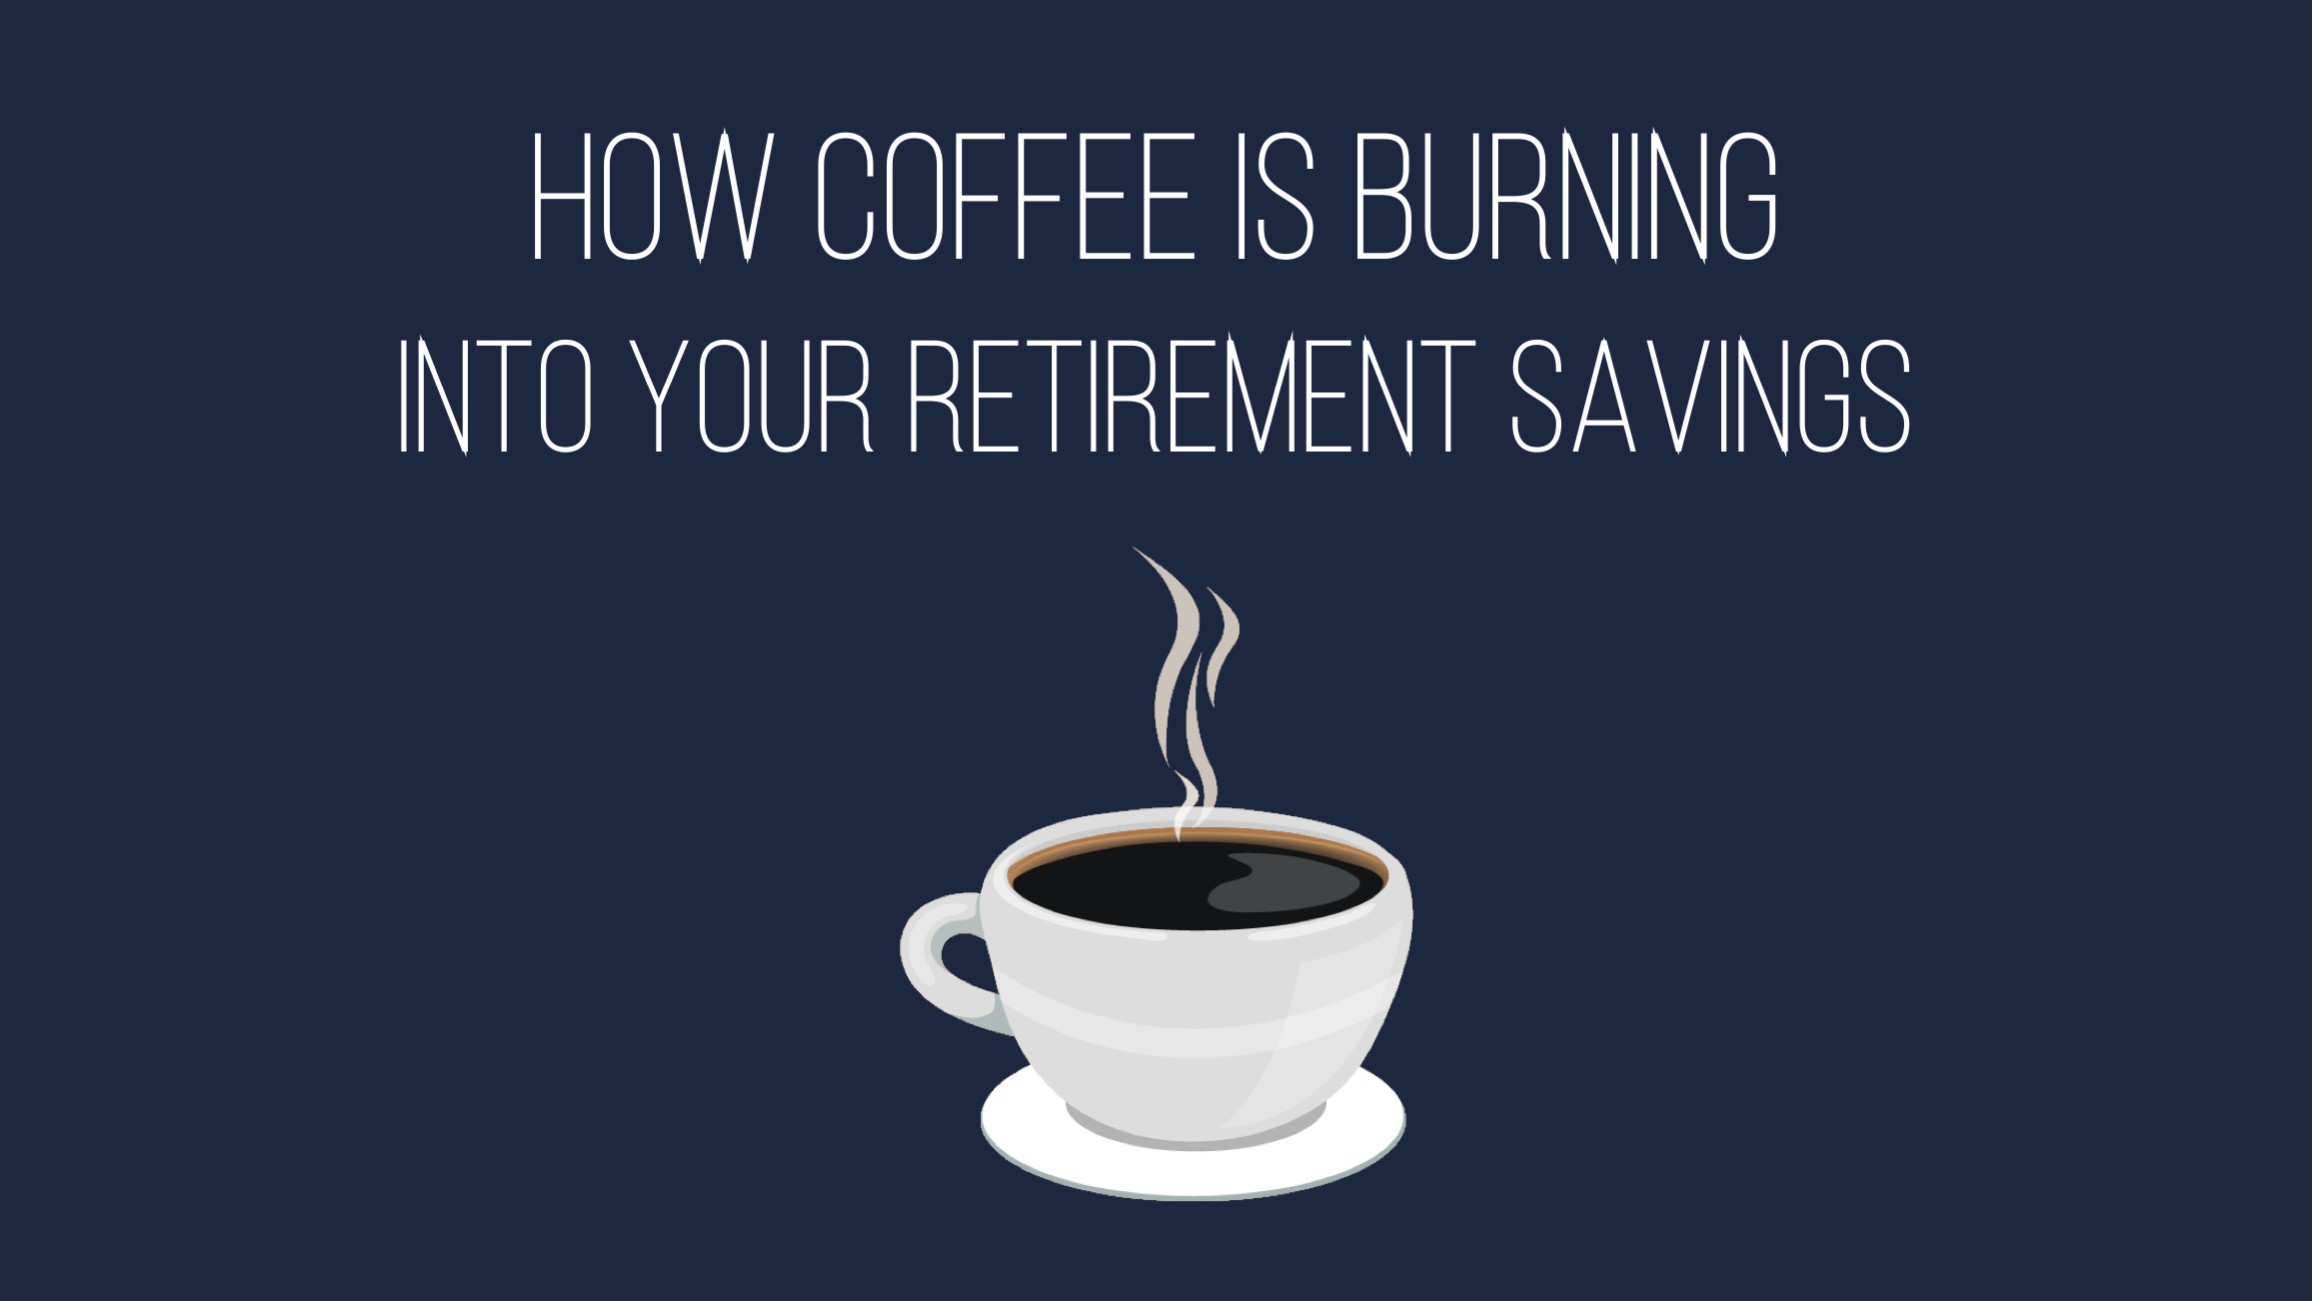 How coffee is burning into your retirement savings